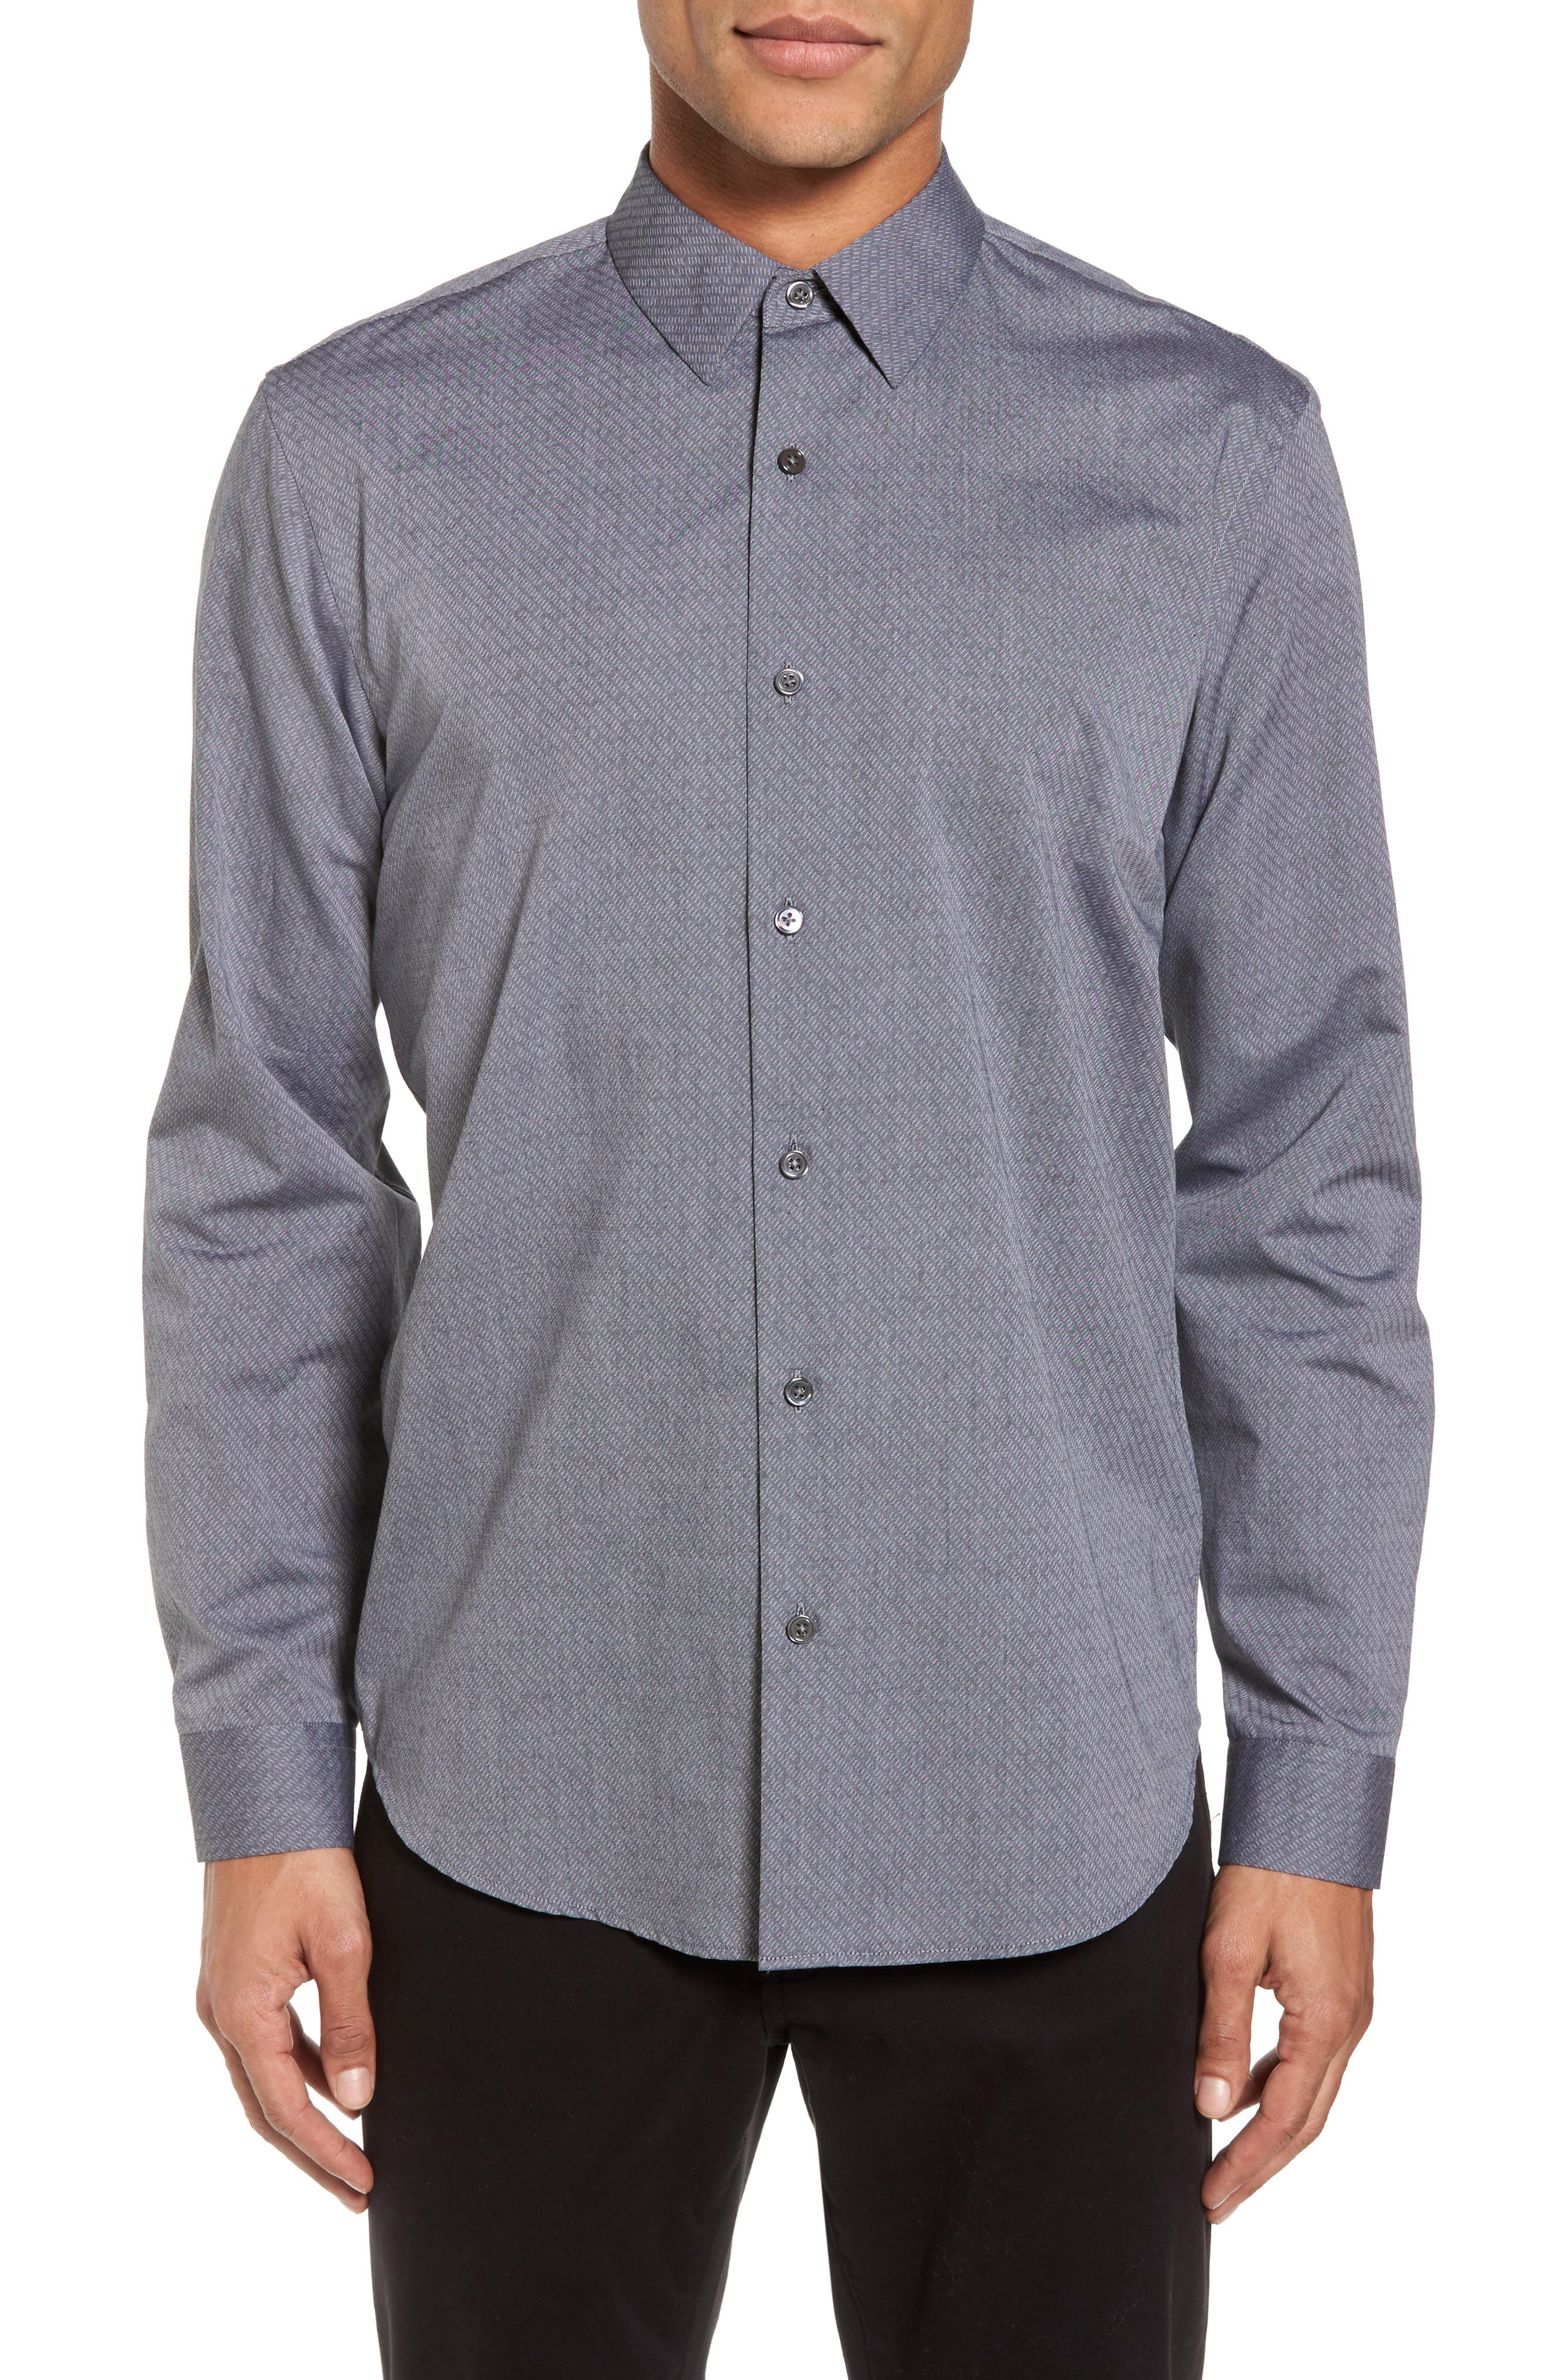 Alternate Image 1 Selected - Theory Storm Trim Fit Solid Sport Shirt